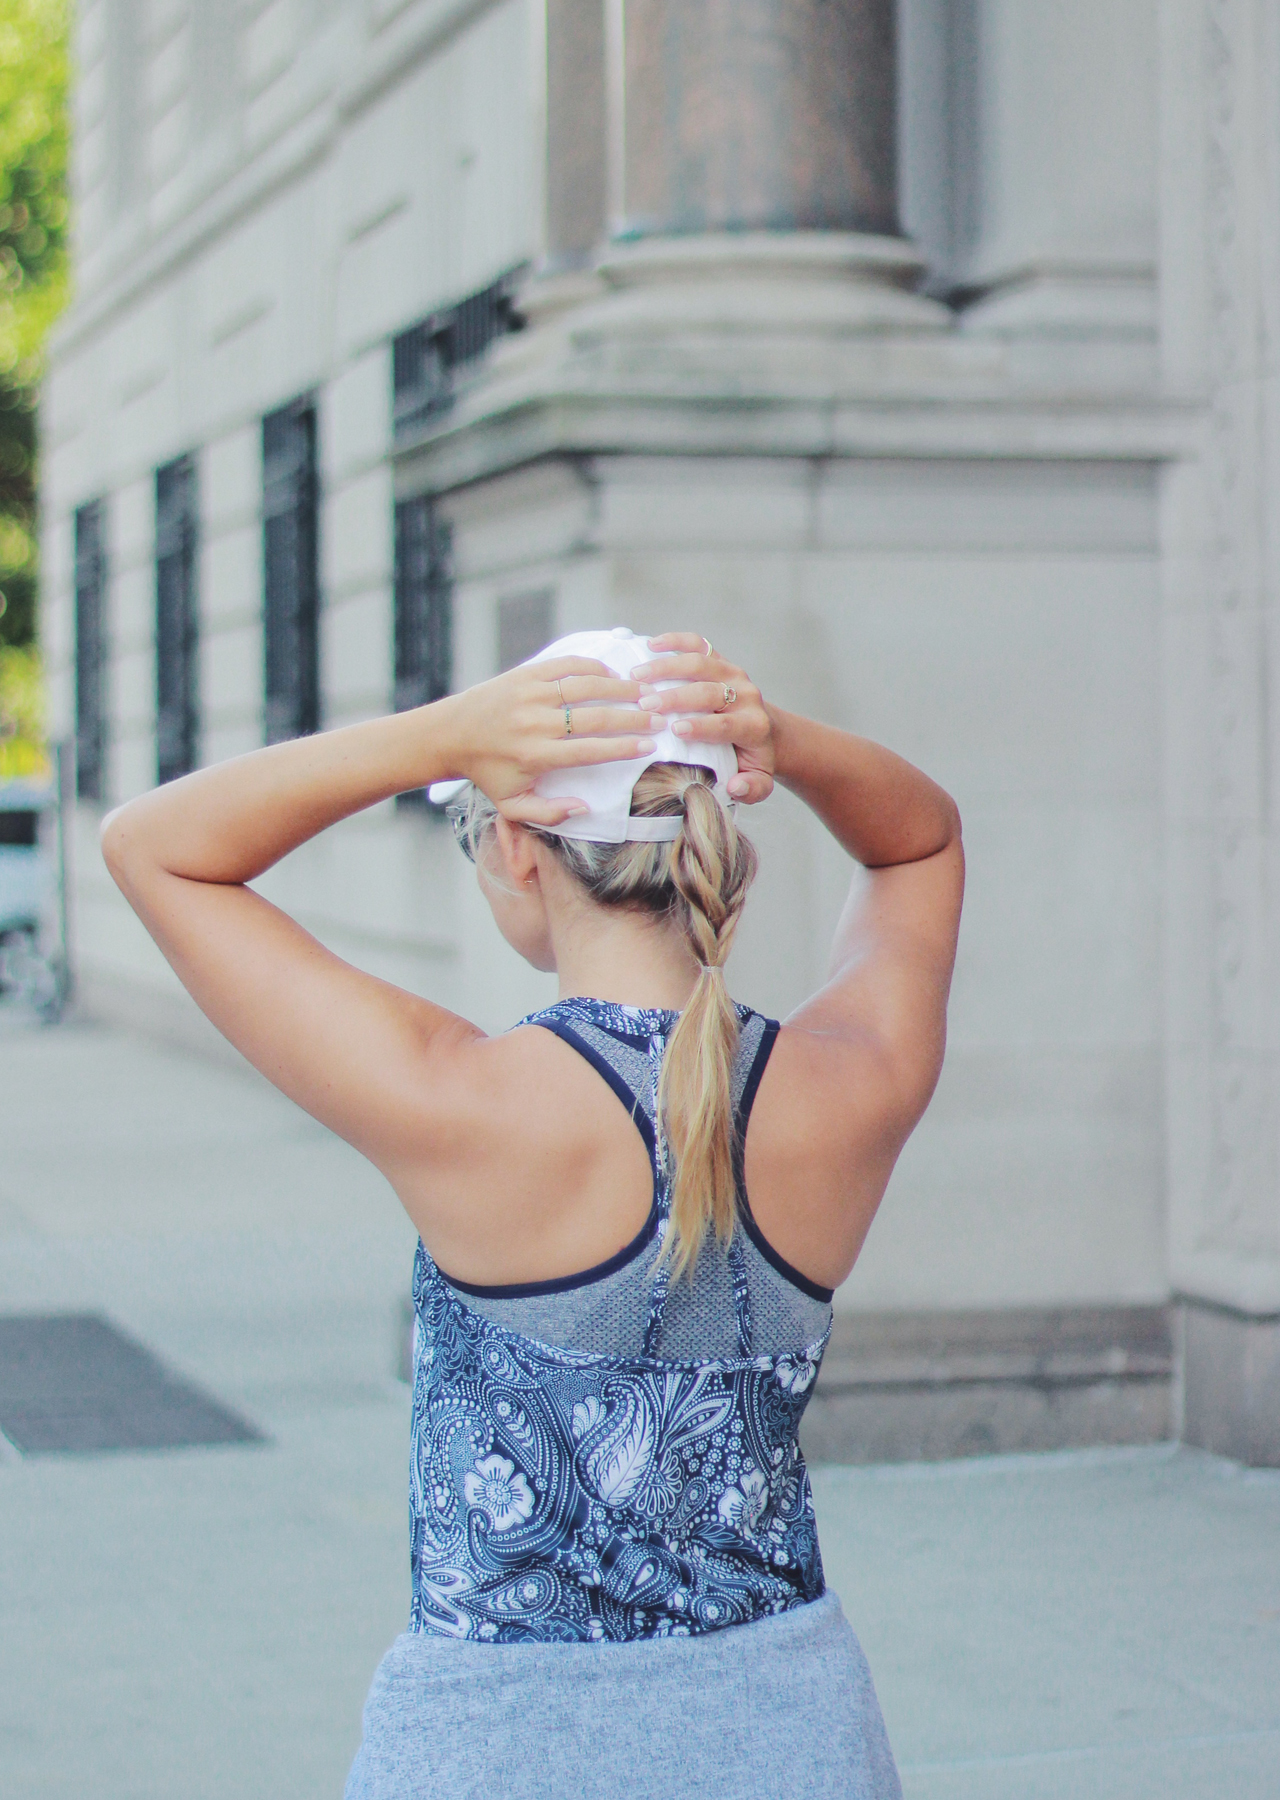 The Steele Maiden: End of Summer Workouts with Old Navy Active